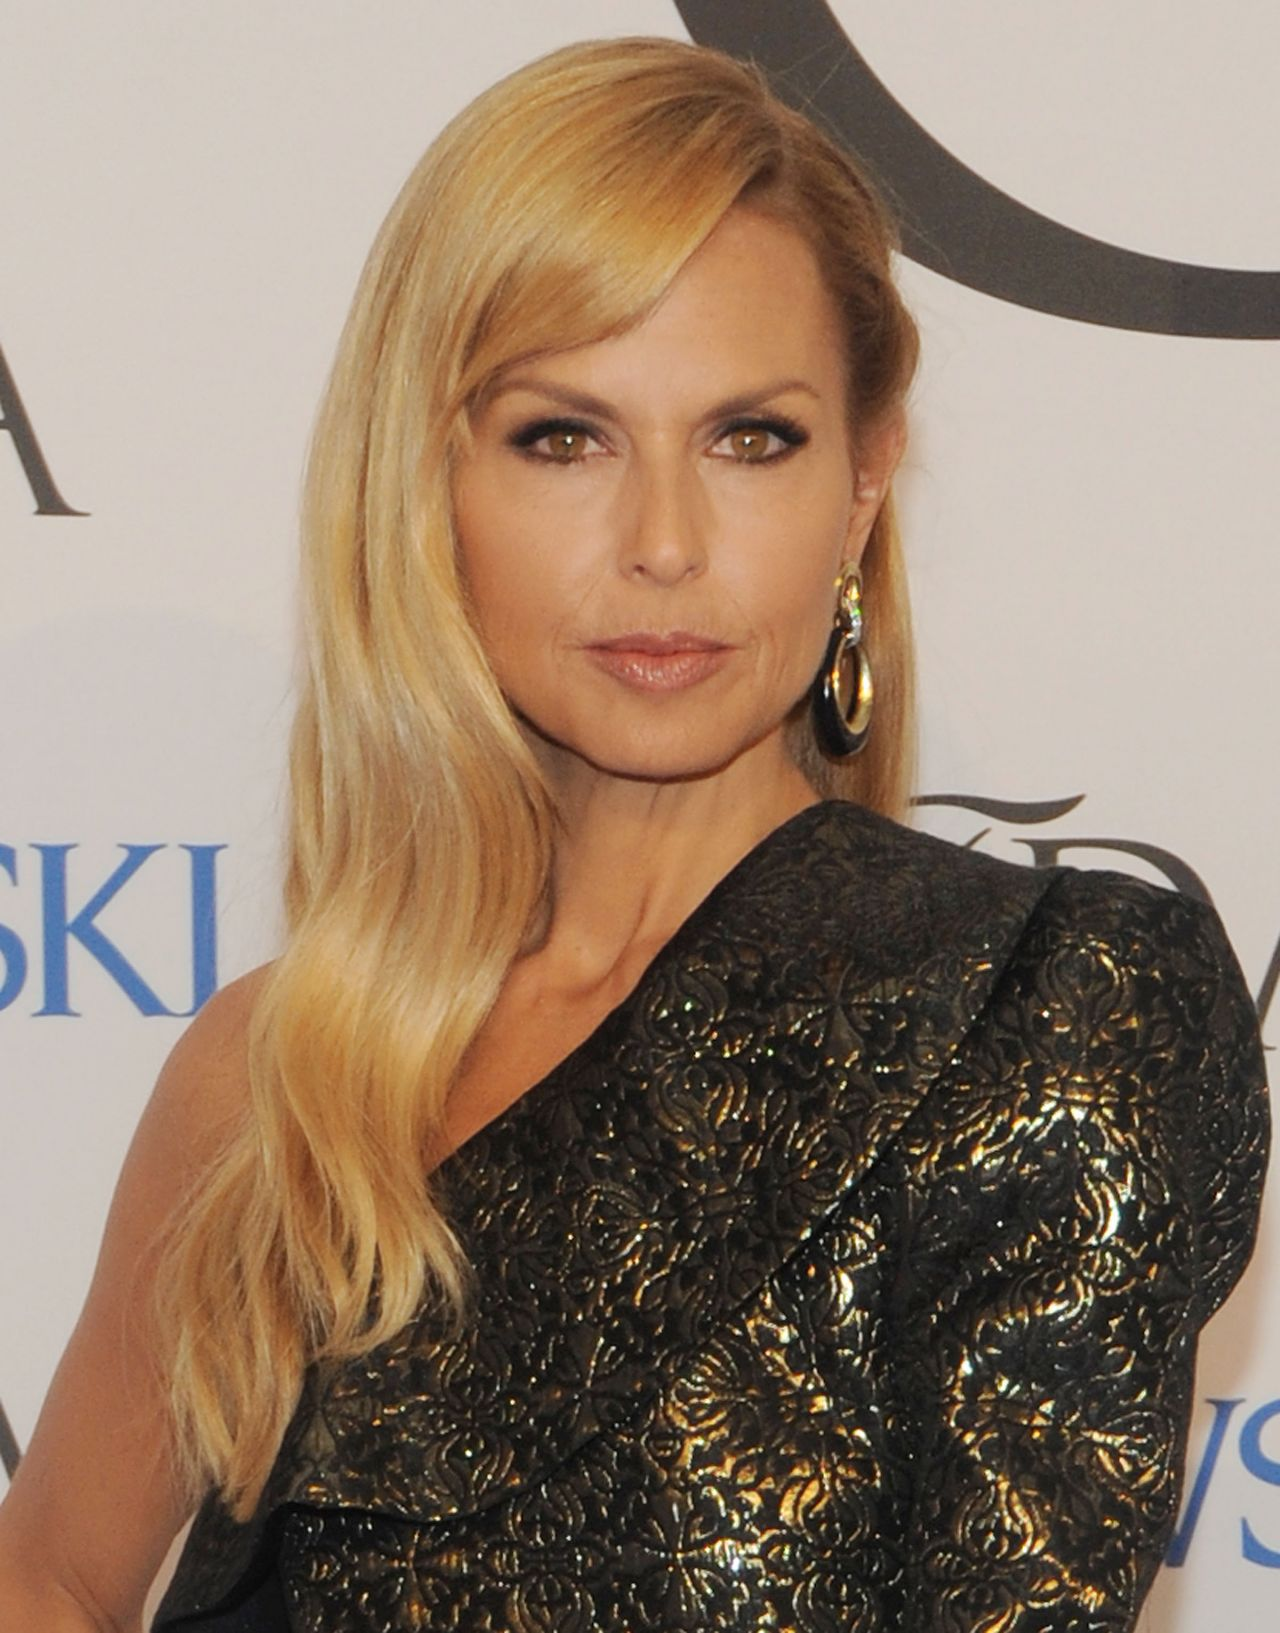 Rachel Zoe High Quality Wallpapers For Iphone